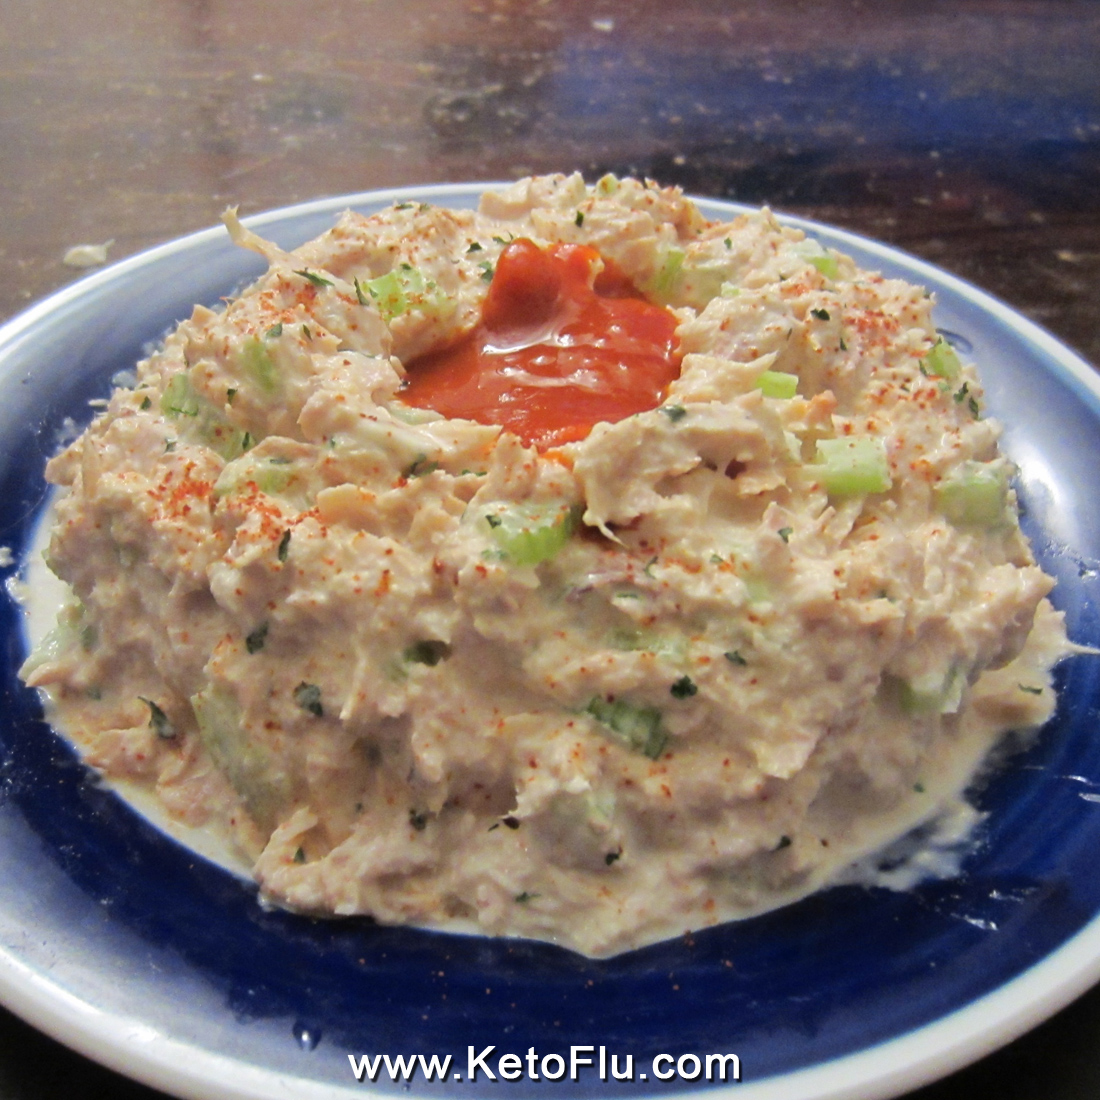 Sriracha Hot Sauce Tuna Salad Volcano (Ketogenic) | KetoFlu.com - Easy Keto Diet Recipes